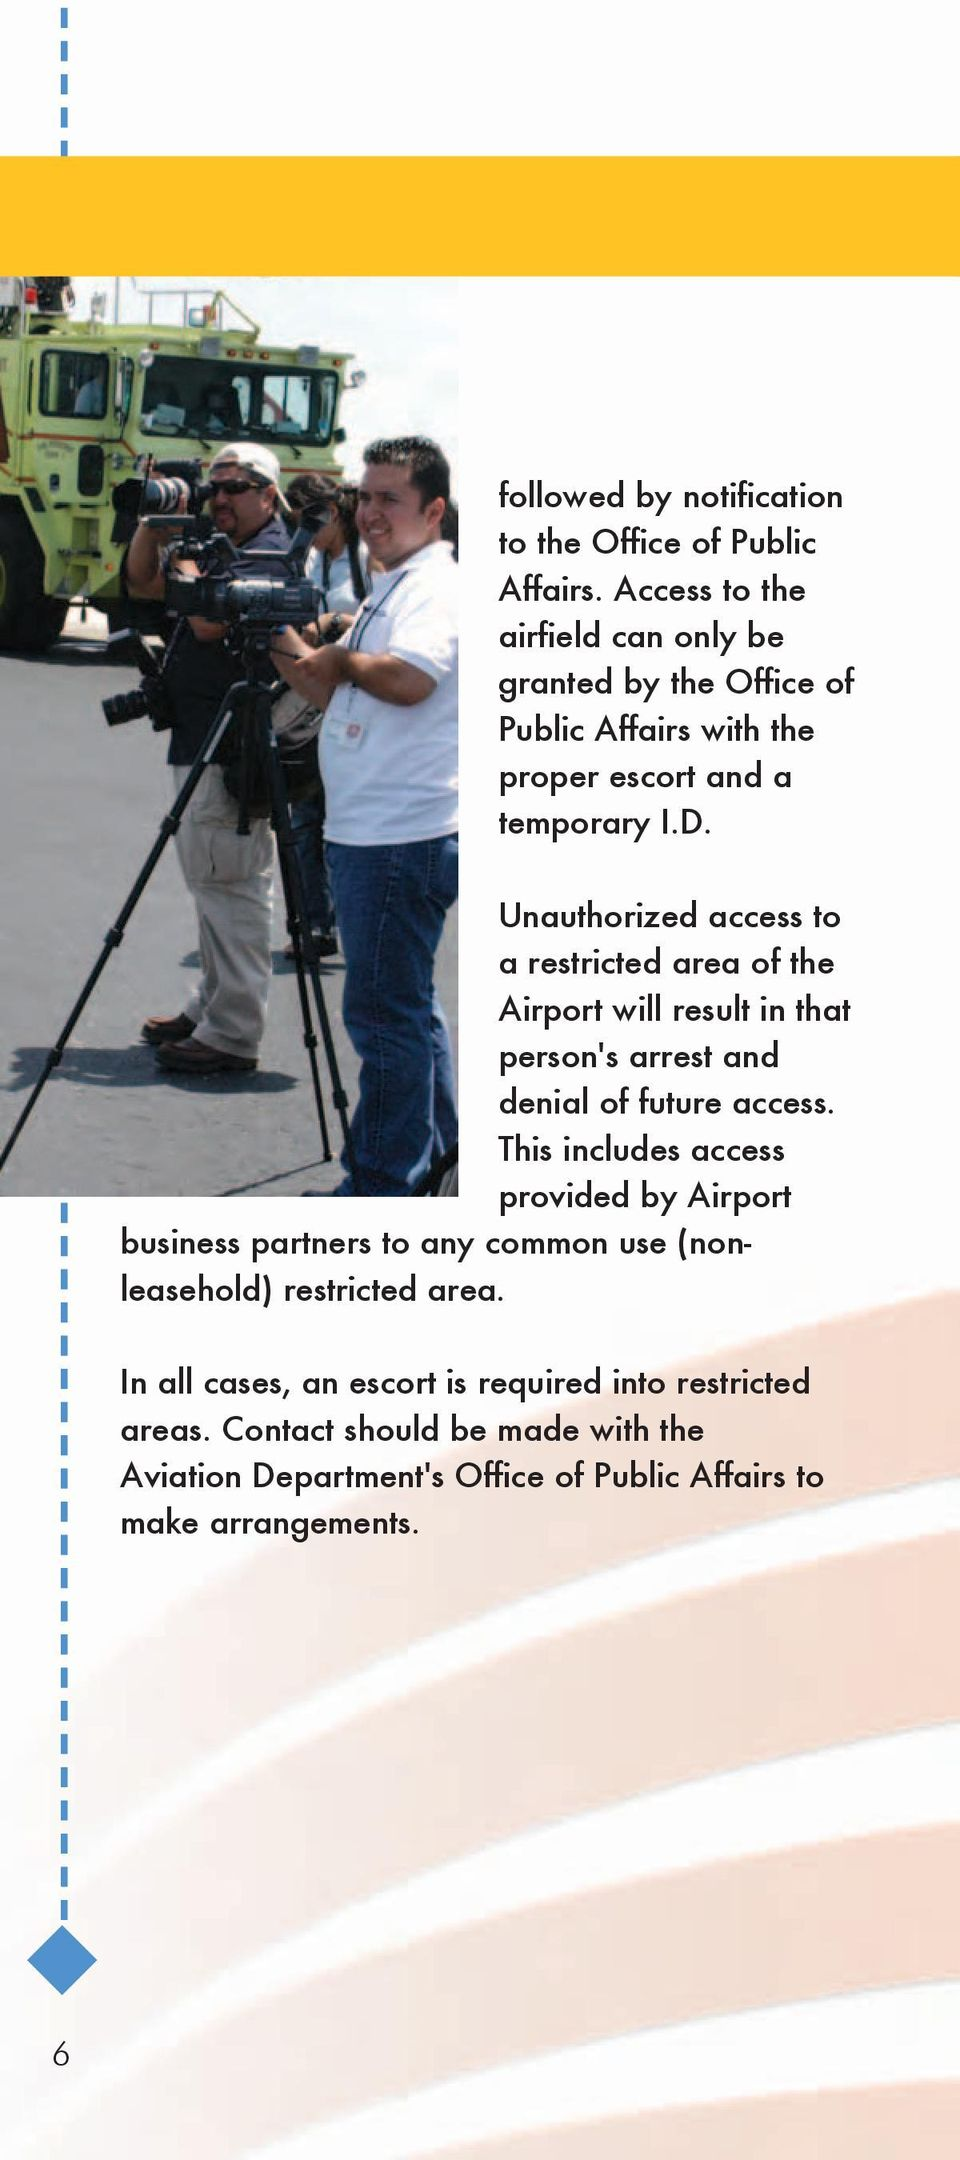 Unauthorized access to a restricted area of the Airport will result in that person's arrest and denial of future access.